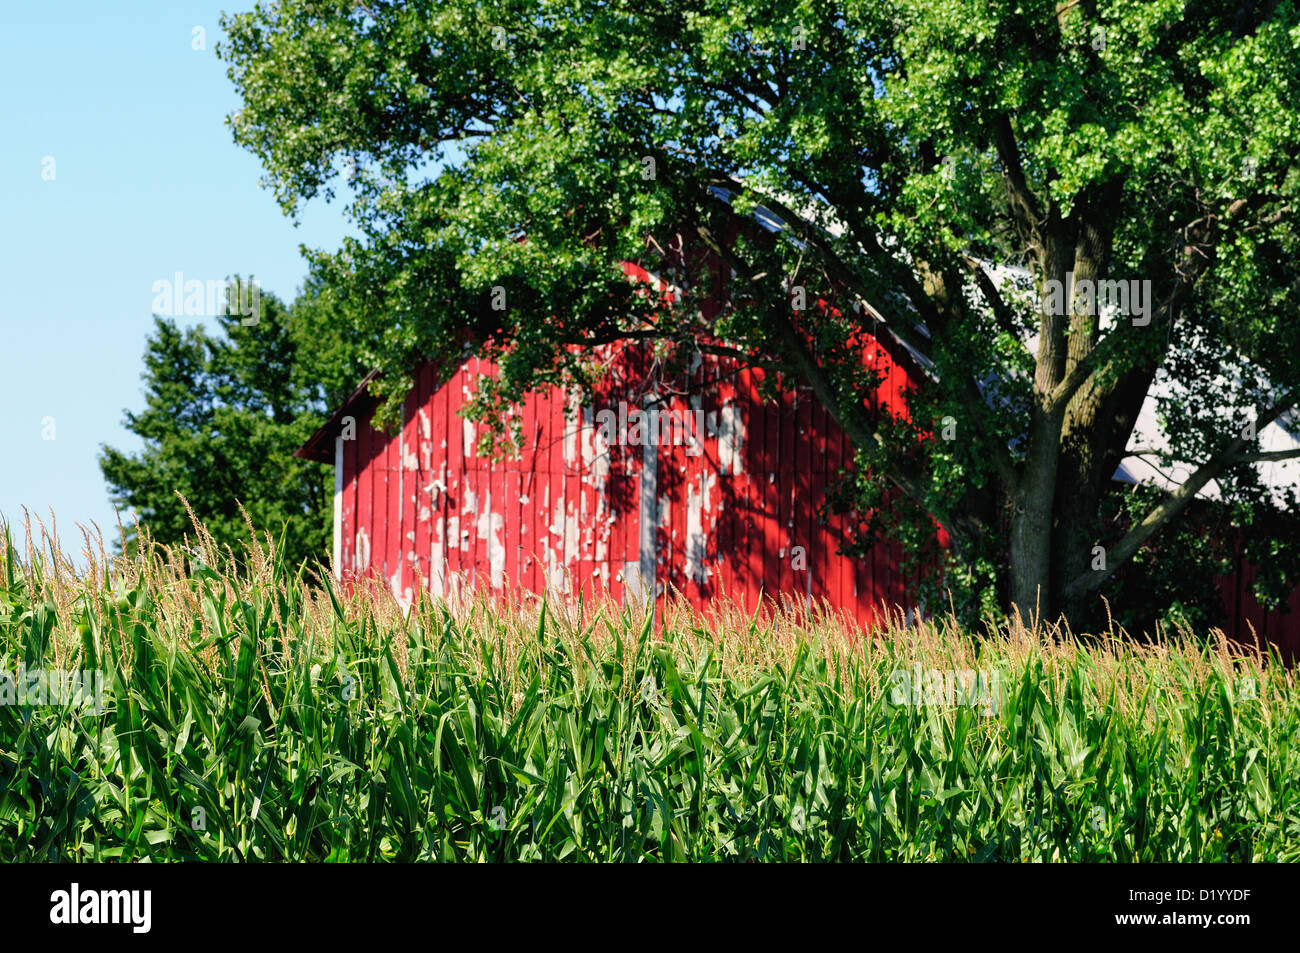 Agriculture corn crop red weathered barn Illinois farm. USA. - Stock Image